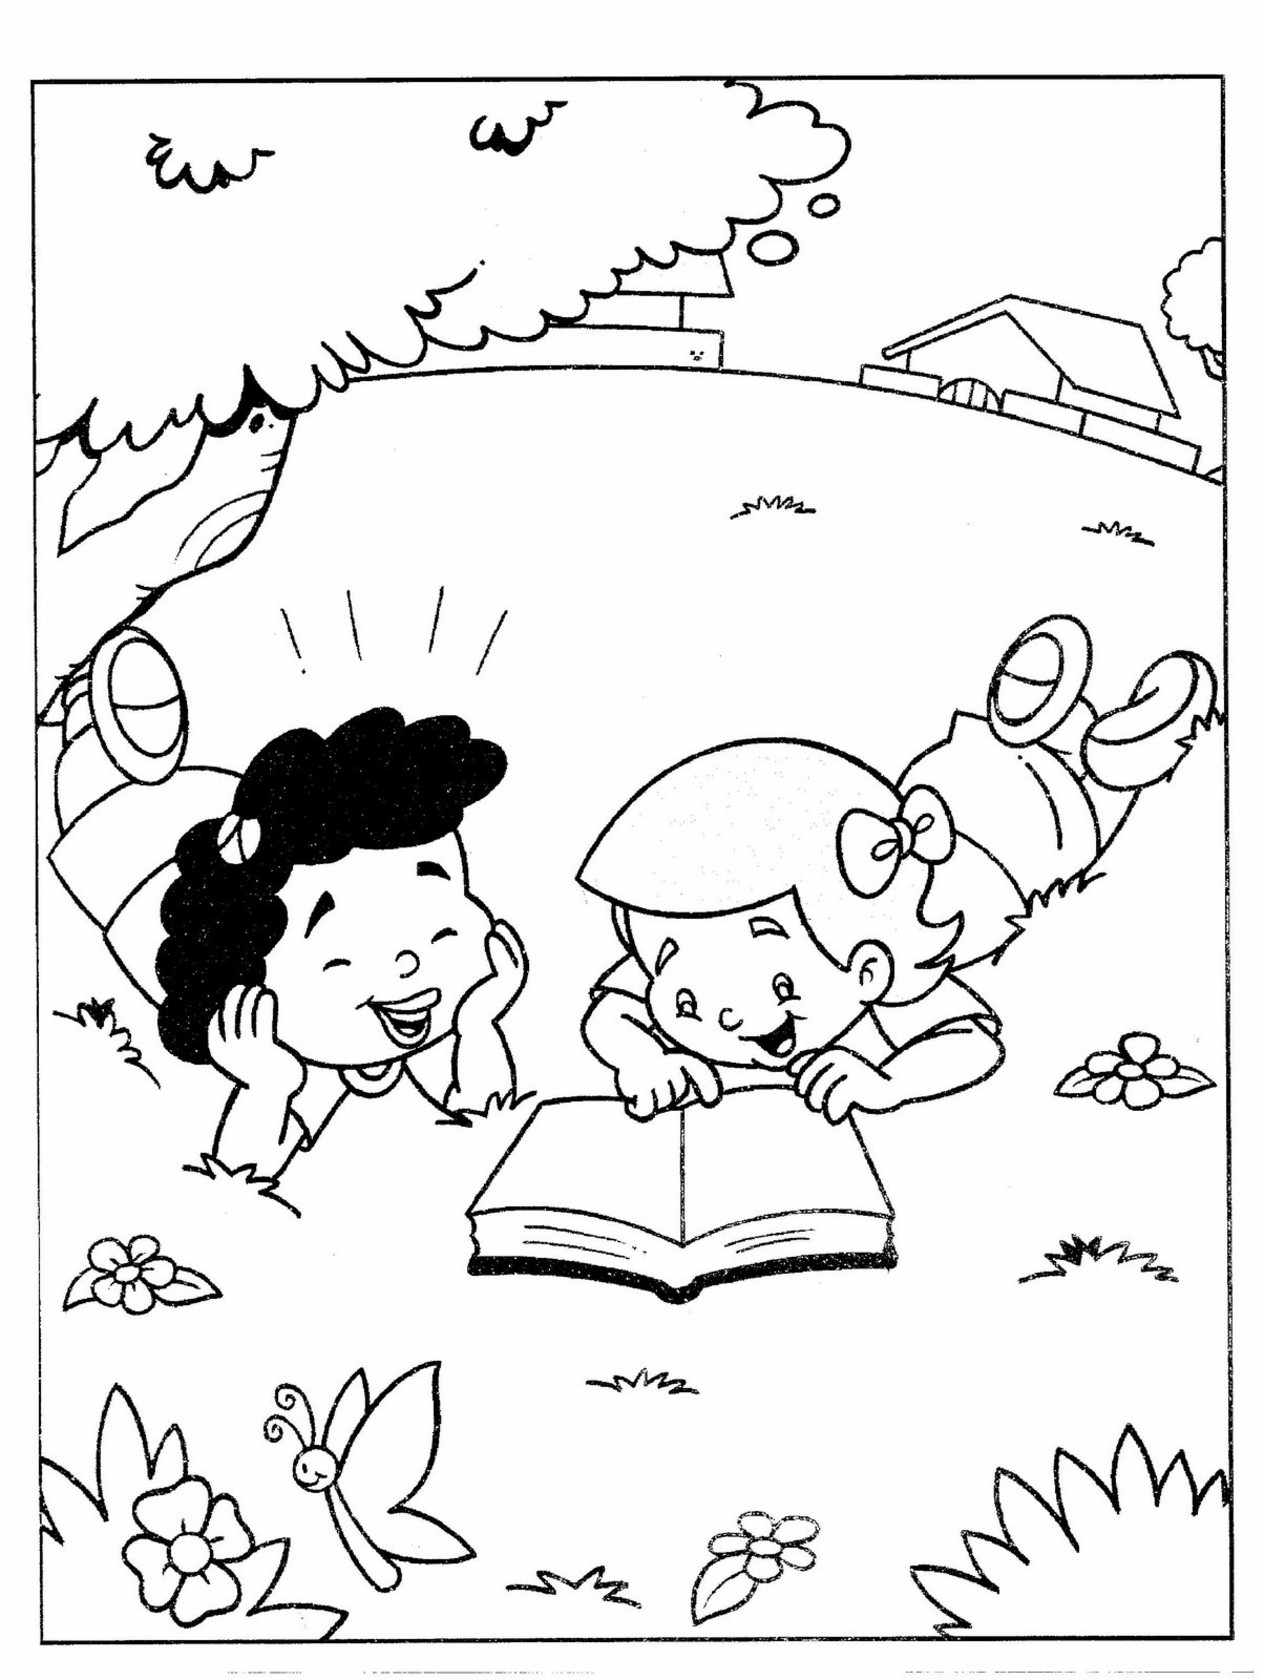 Christian Coloring Pages 3 Coloring Pages To Print Coloring For